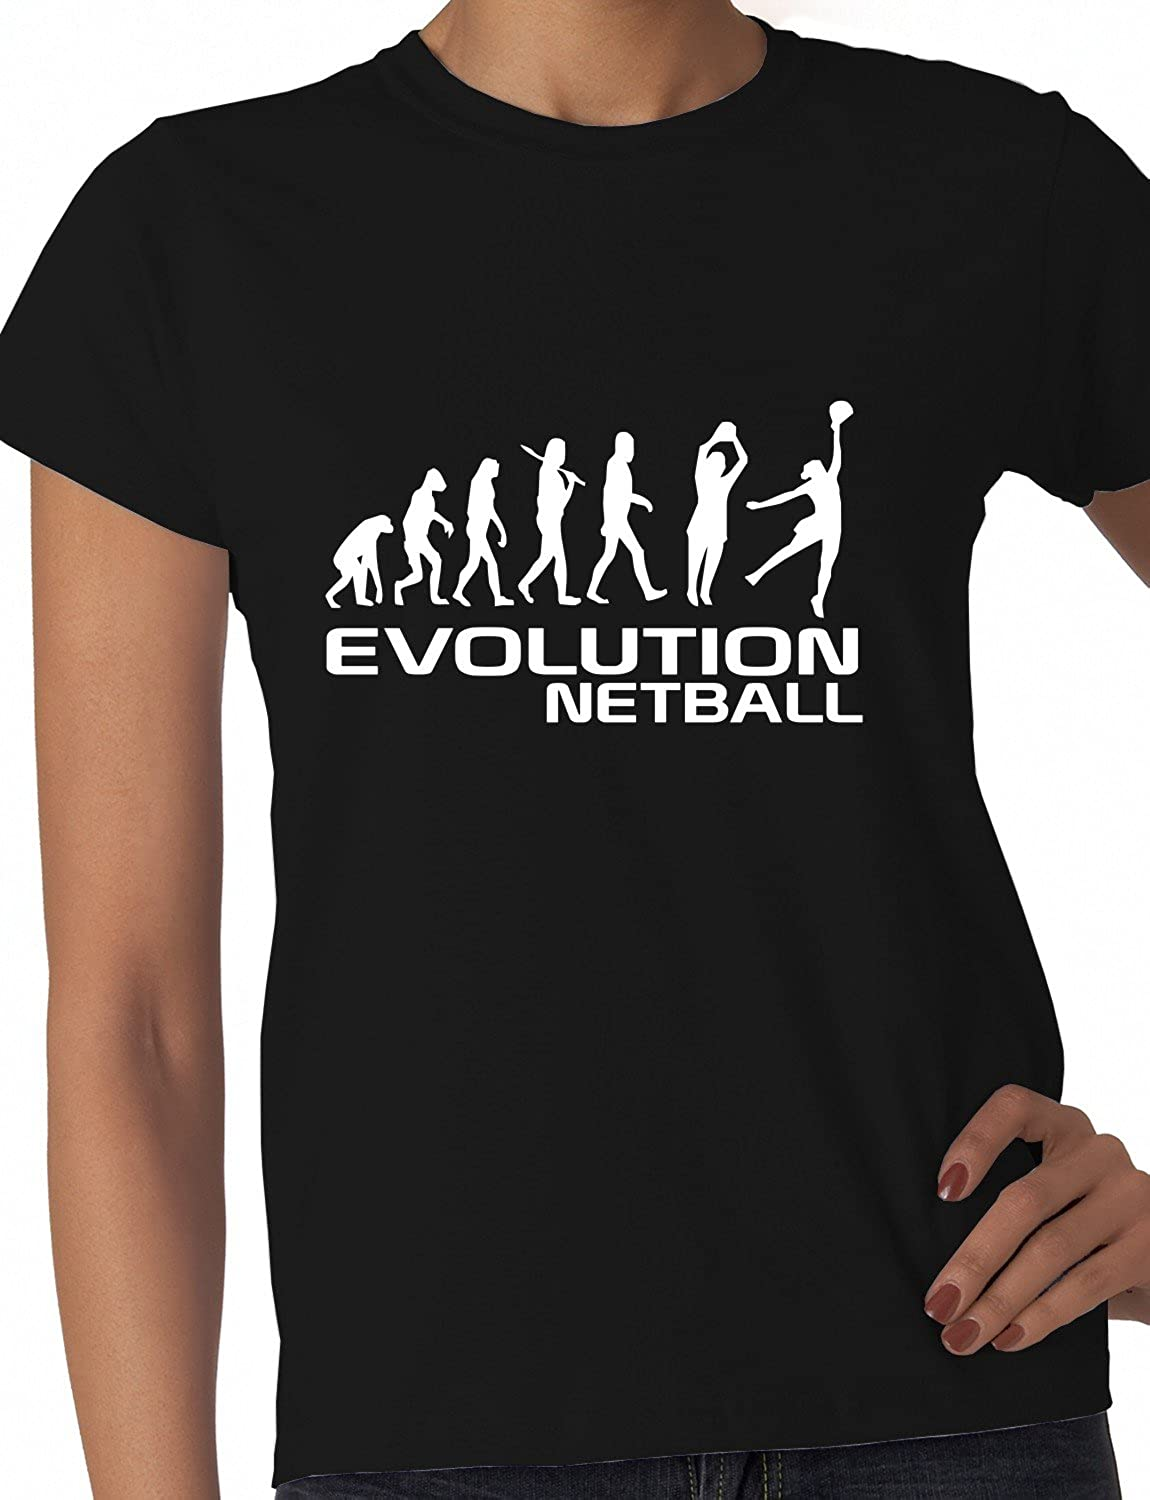 Design t shirt netball - Evolution Of Netball Funny Ladies T Shirt Size S Xxl